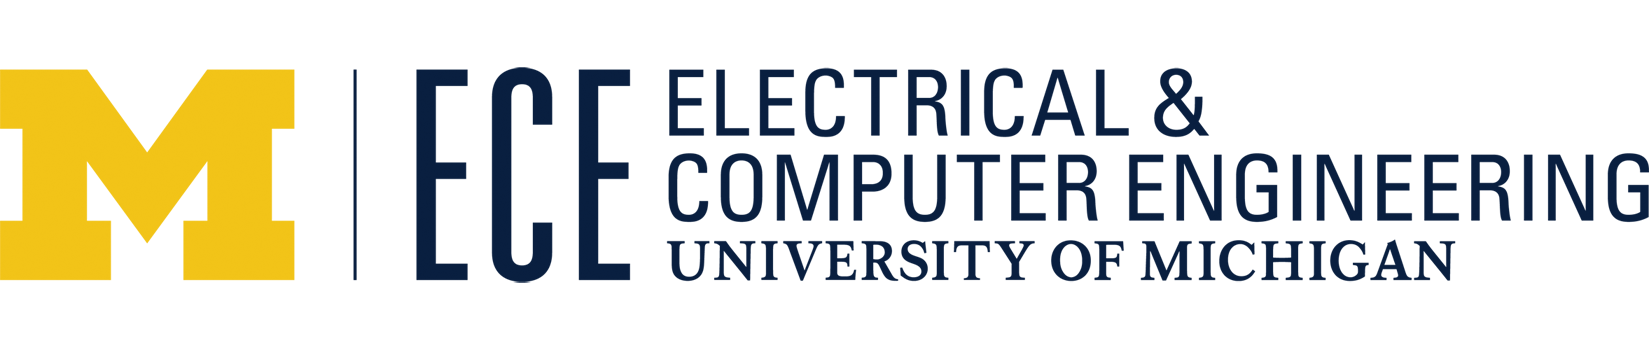 Michigan Electrical and Computer Engineering